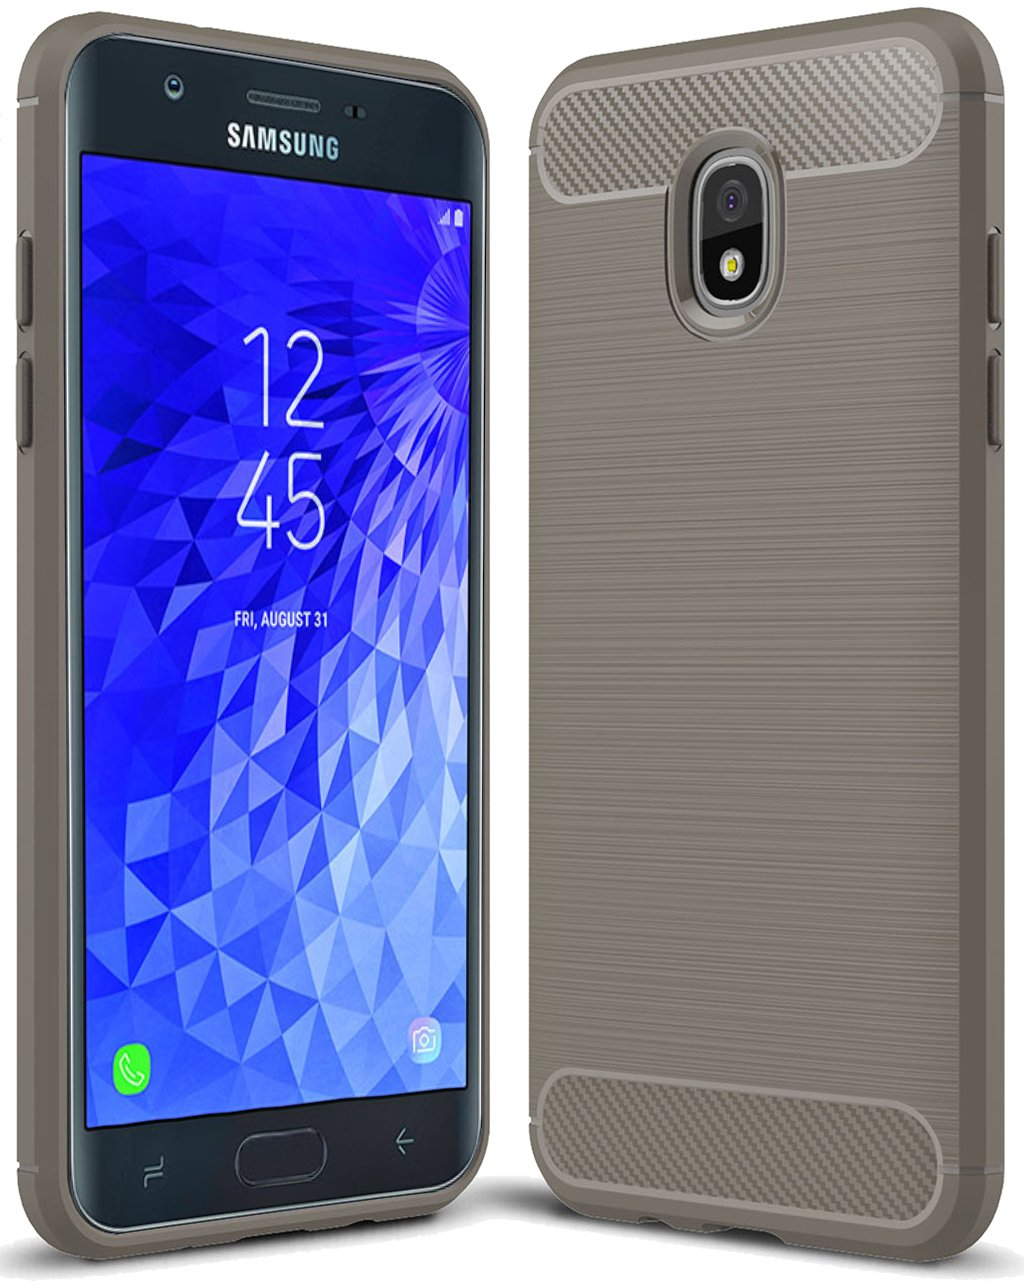 for Samsung Galaxy J7 2018 case, Galaxy J7 V 2nd Gen Case,Galaxy J7 Refine Case,Galaxy J7 Aero,J7 Star,J7 Top,J7 Crown,J7 Aura,J7 Eon,J737V,J737T Sucnakp TPU Protective Case Cover(TPU Gray)